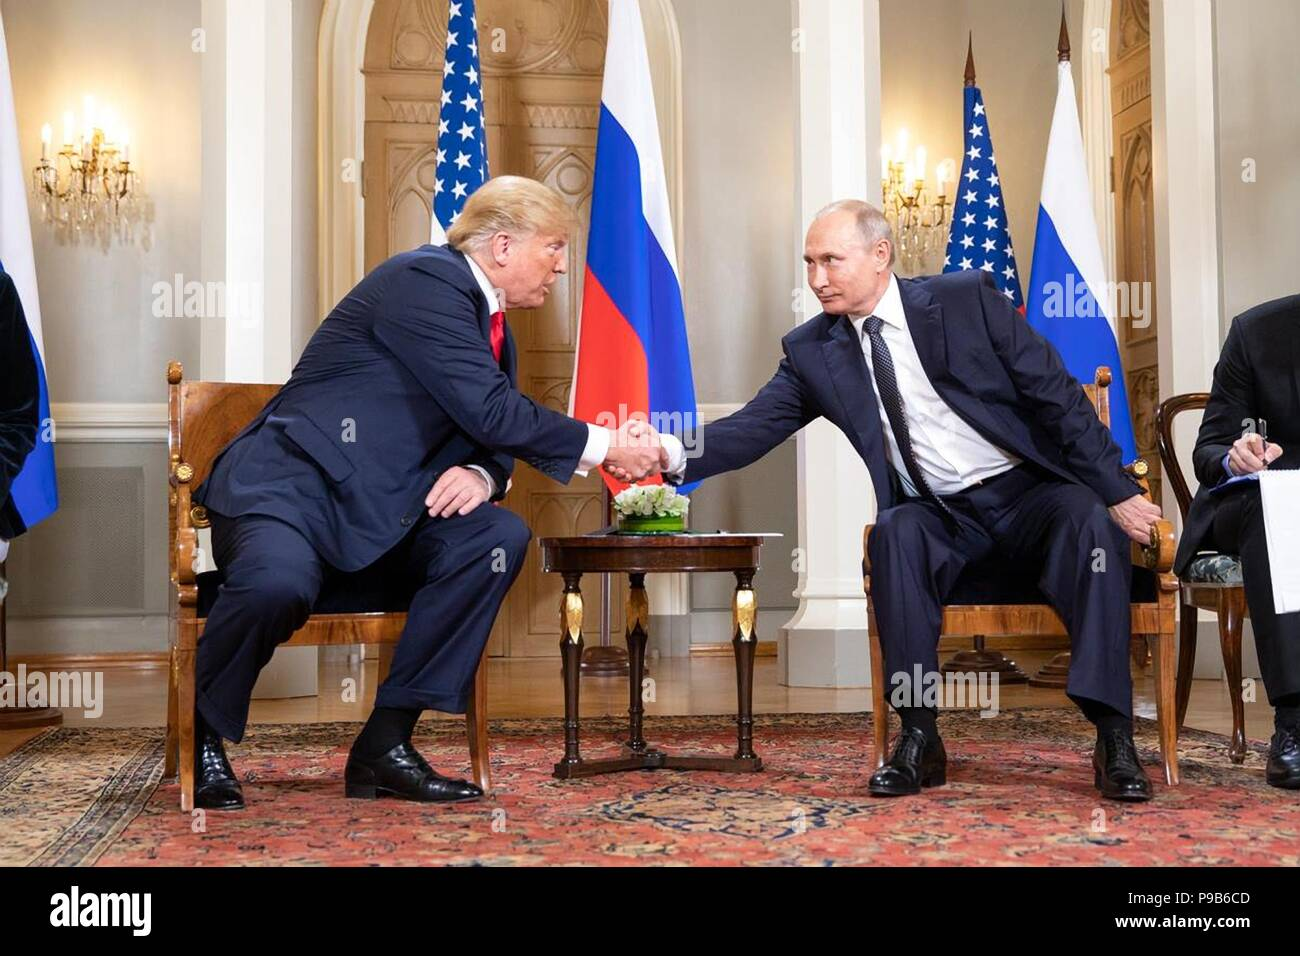 Russian President Vladimir Putin shakes hands with U.S. President Donald Trump during the U.S. - Russia Summit meeting at the Presidential Palace July 16, 2018 in Helsinki, Finland. - Stock Image